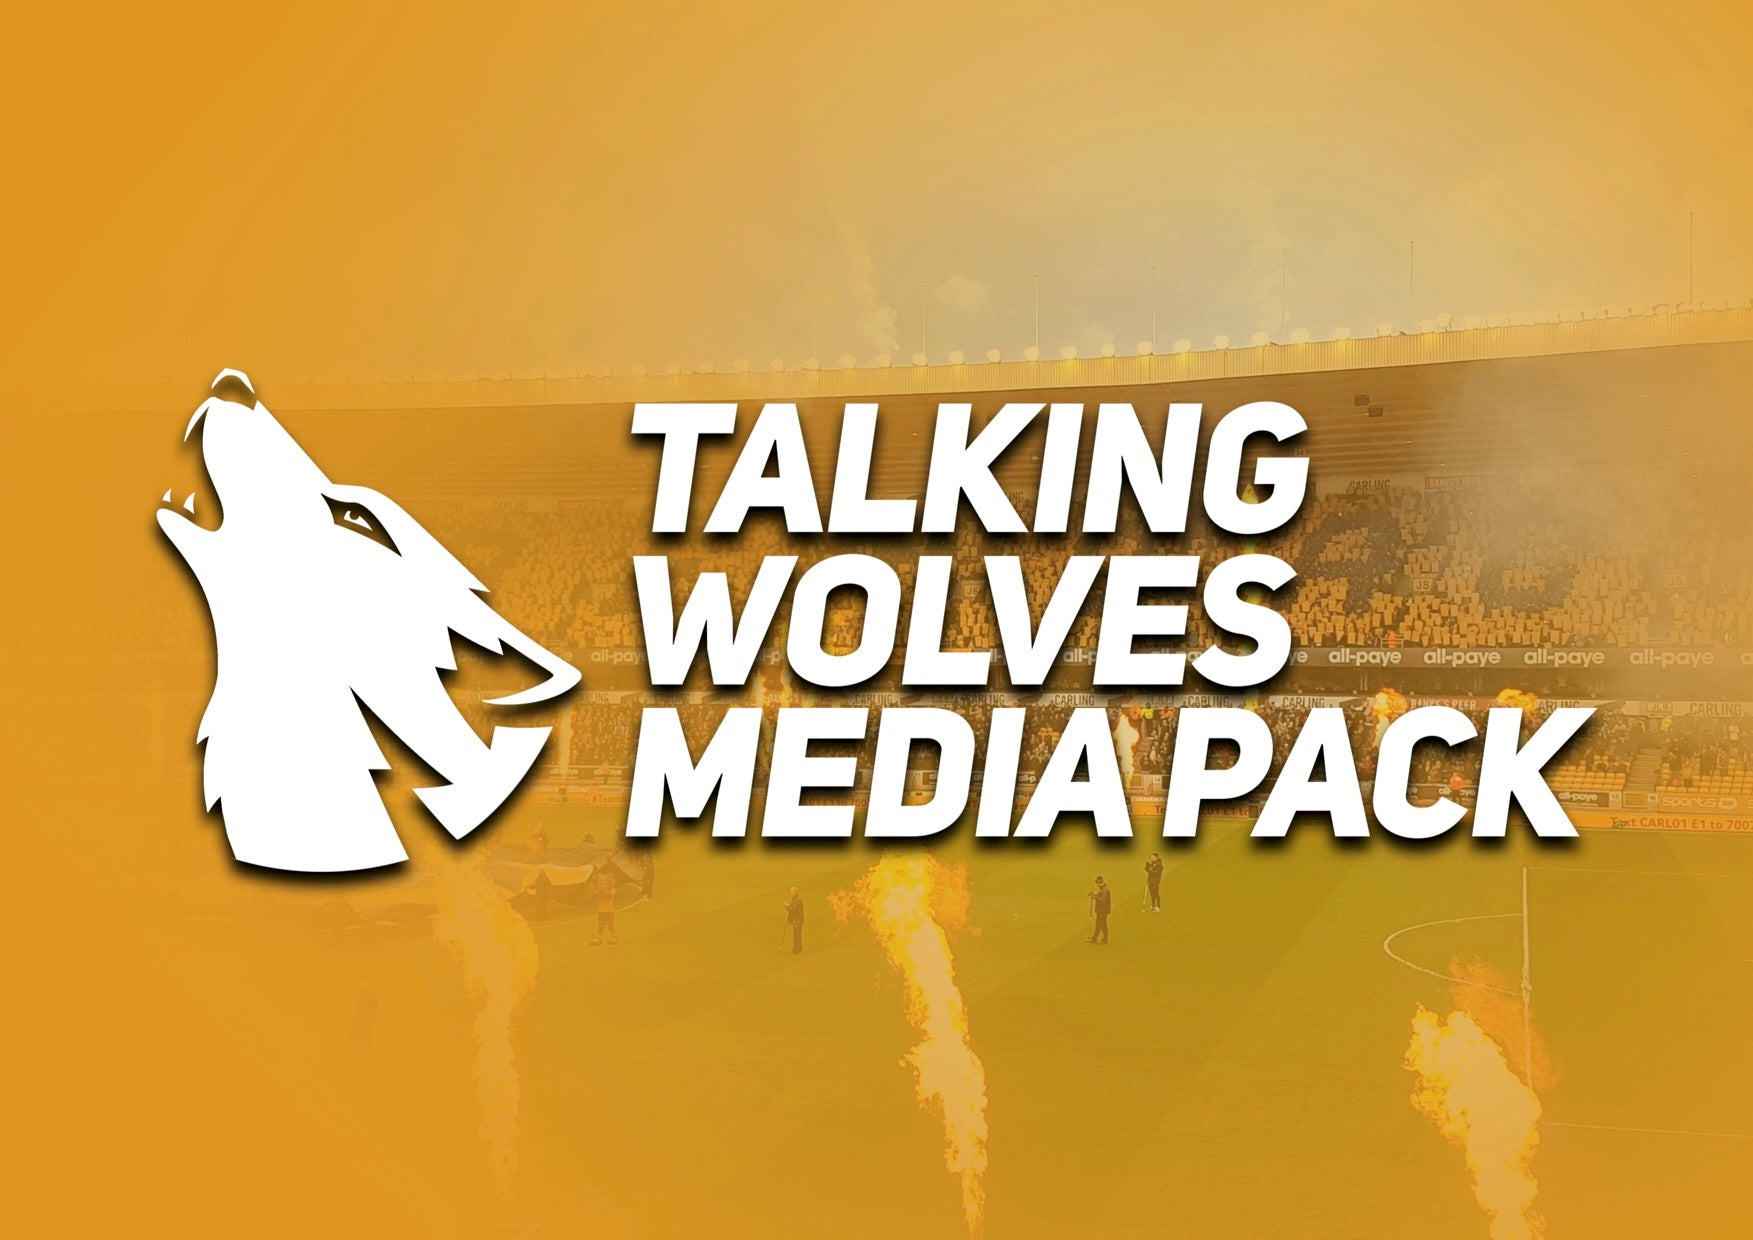 Talking Wolves Media Pack